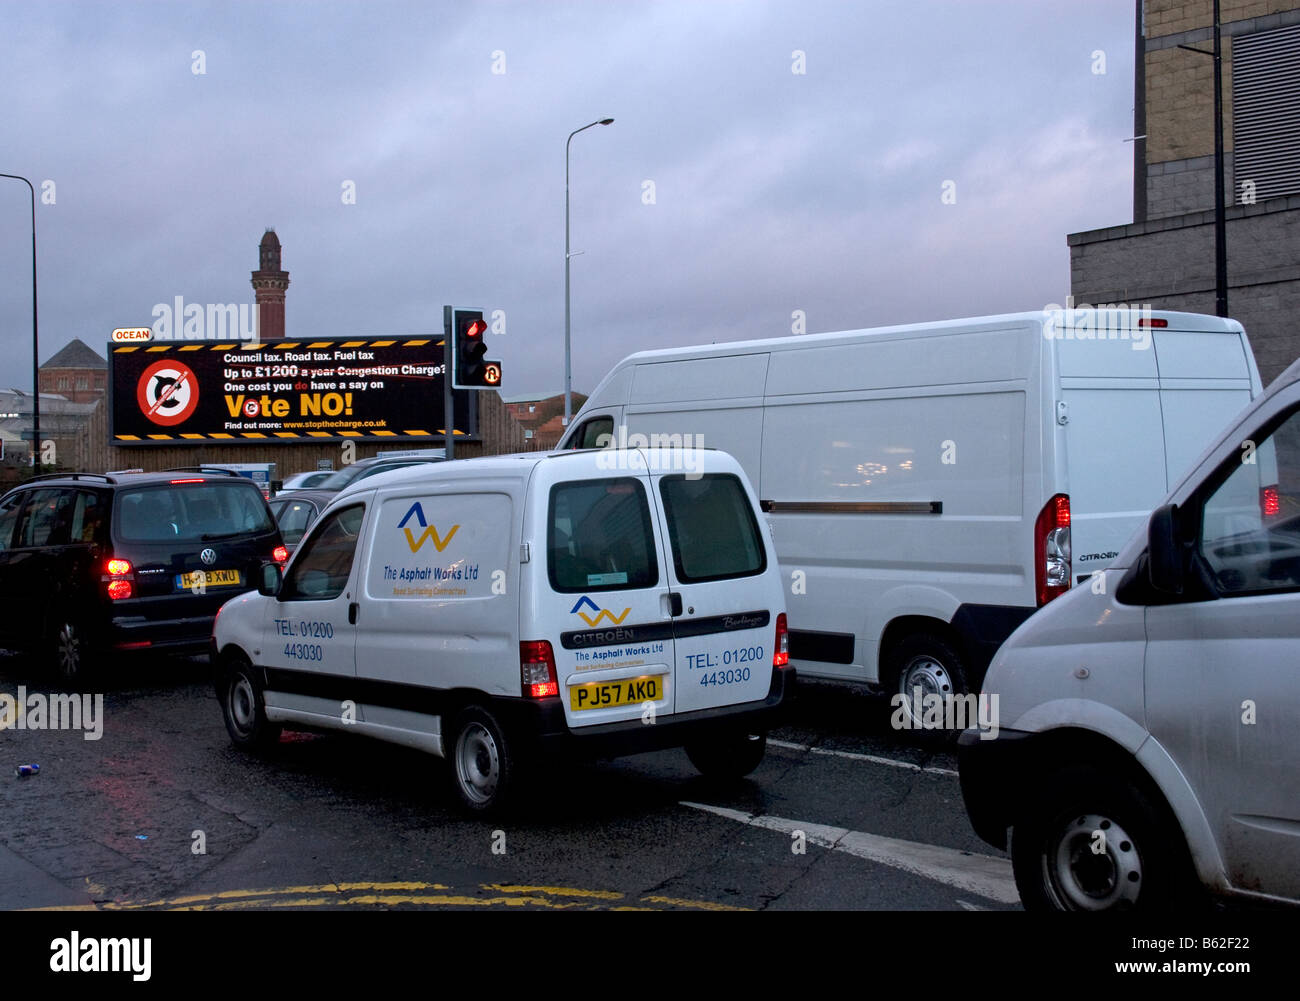 Traffic congestion,city centre, Manchester,UK. Manchester Prison (Strangeways) and 'Vote No to congestion charge' - Stock Image